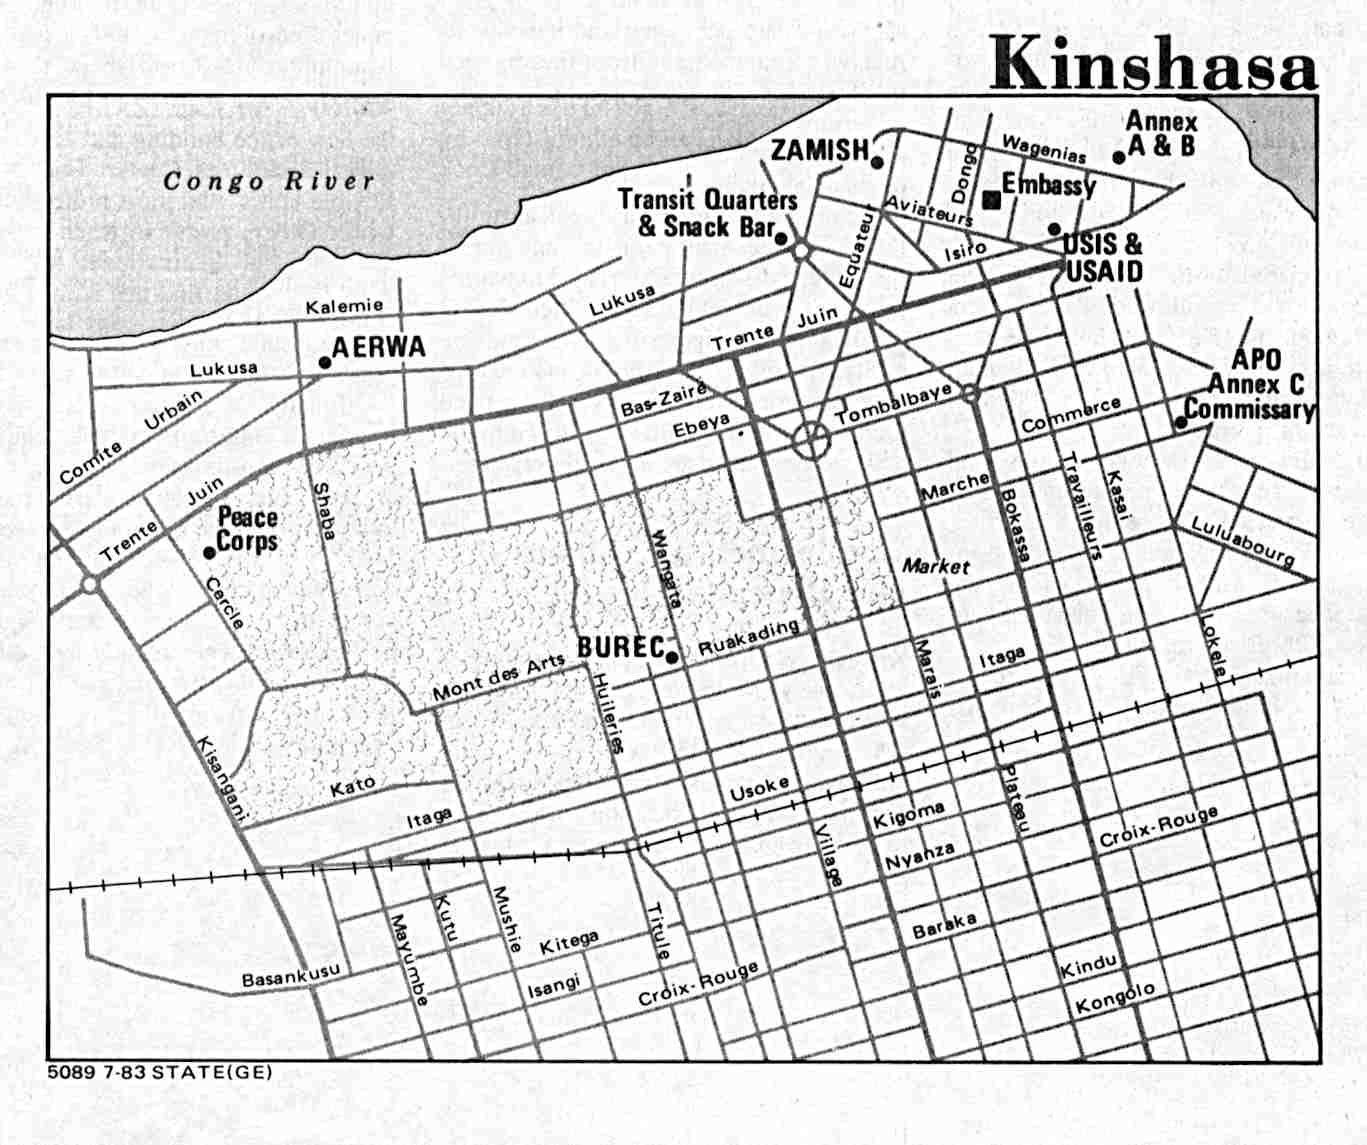 Kinshasa City Map, Democratic Republic of the Congo (Zaire)